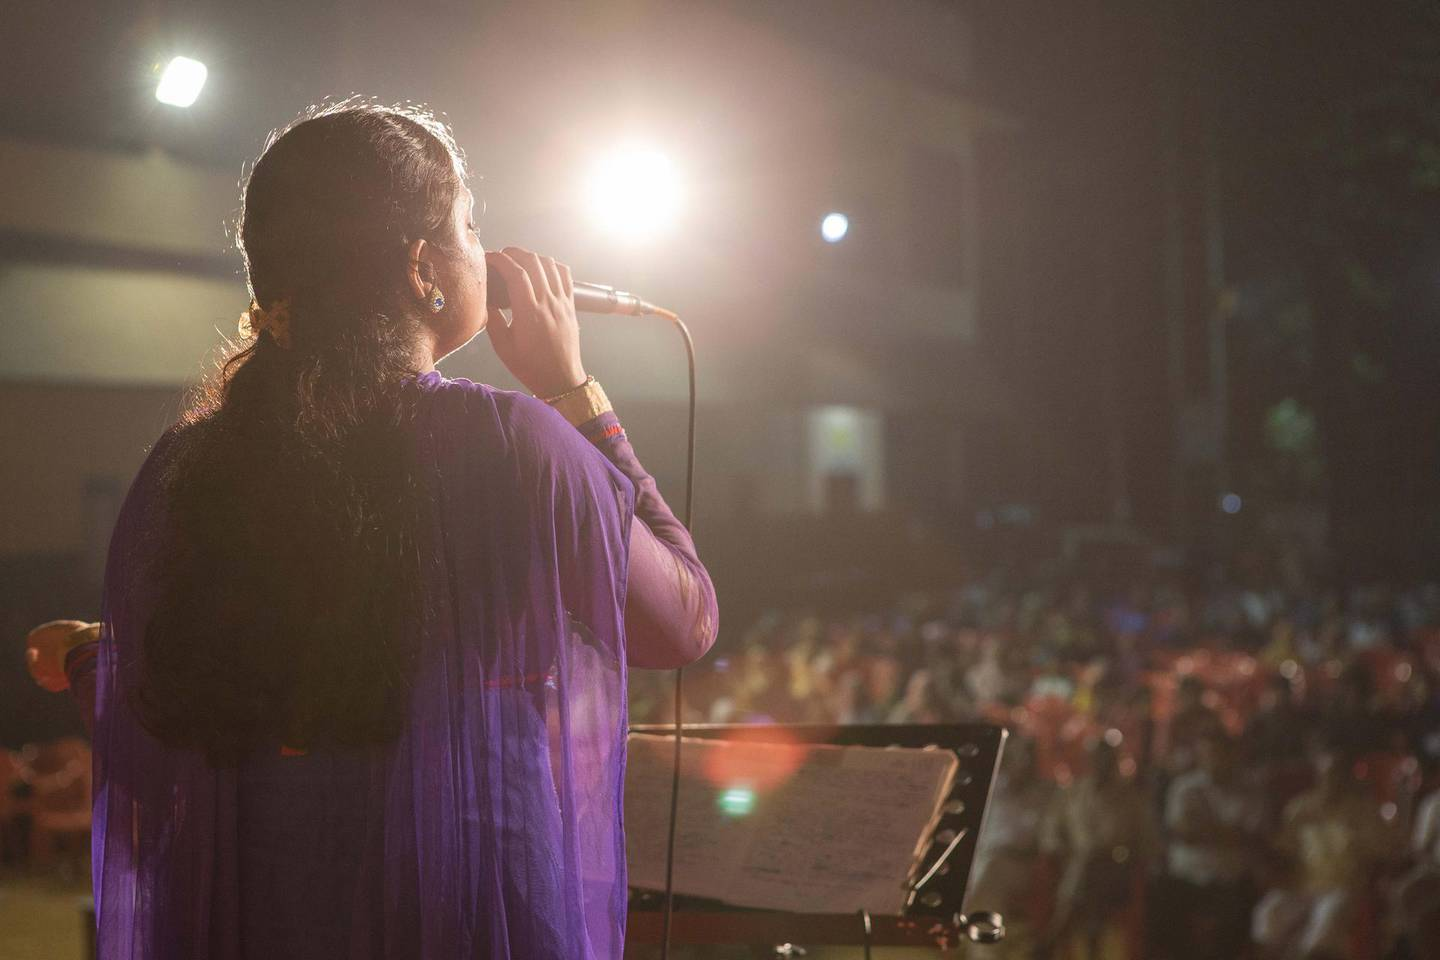 Singer Theertha Suresh performs a Kathu Pattu song for Indian villagers during a concert in Mukkam, Kerala, India. Photo by Sebastian Castelier